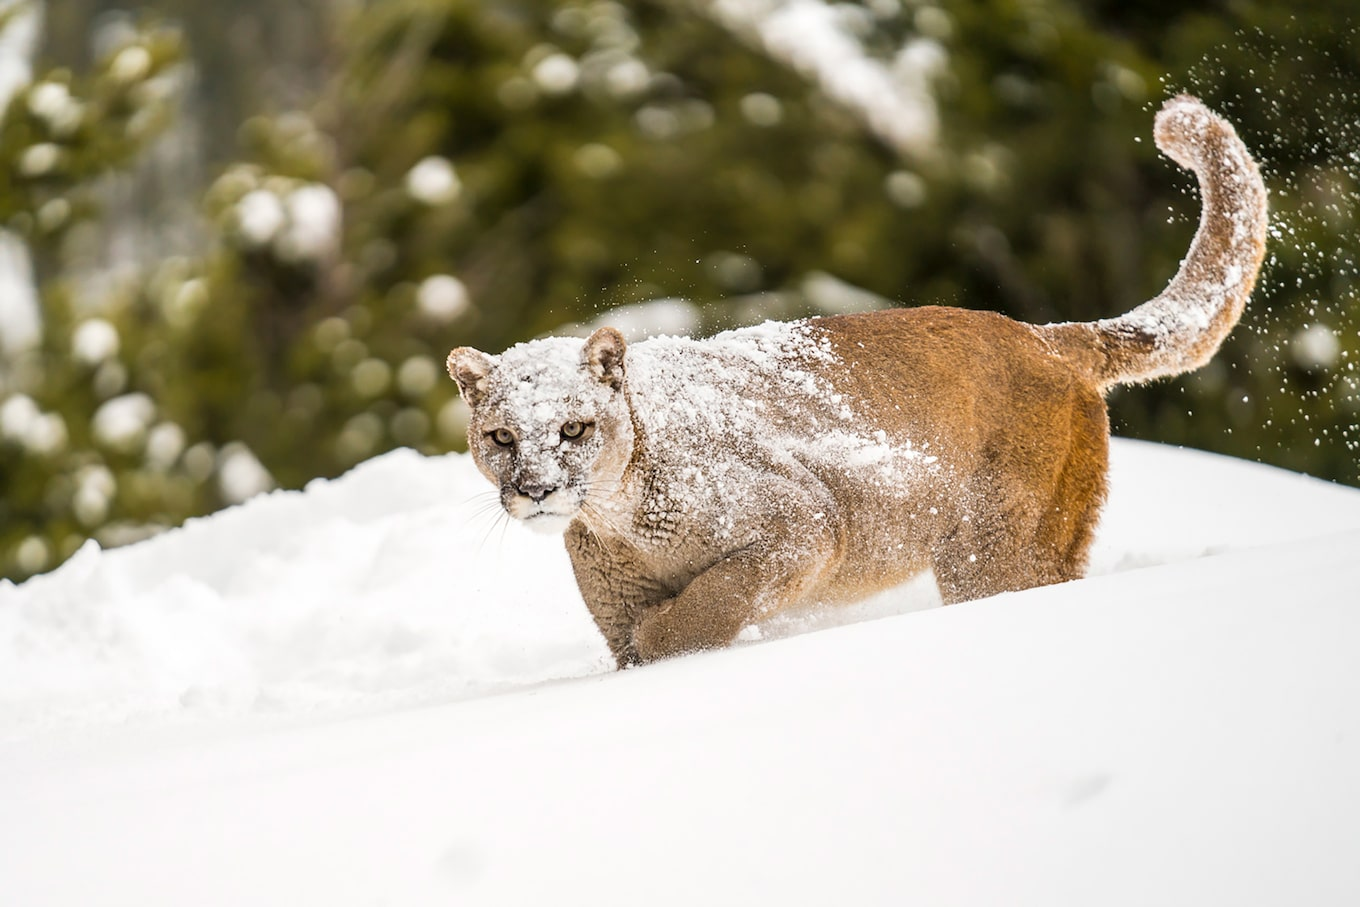 suha-derbent-sony-alpha-7RIII-majestic-snow-cat-prowling-through-snow-drift